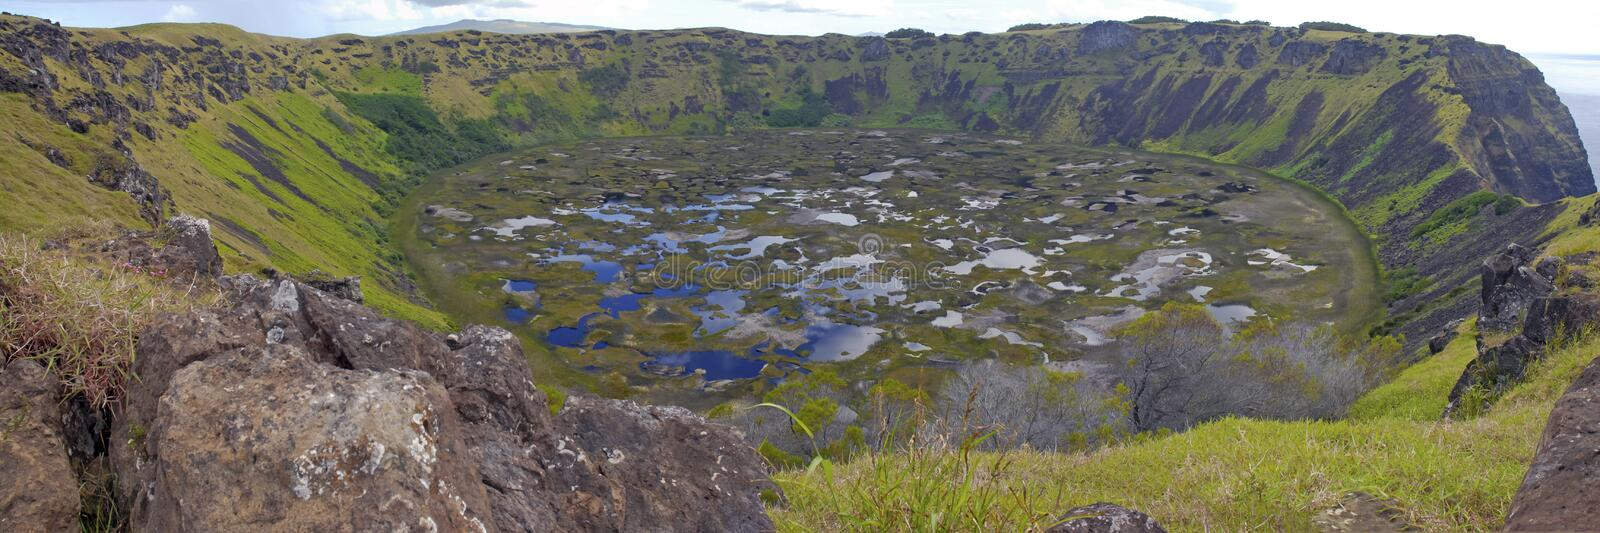 Rano Kau and its Crater on Rapa Nui. Rano Kau and its Crater filled with Fresh Water on Rapa Nui, Easter Island, Chile royalty free stock photo